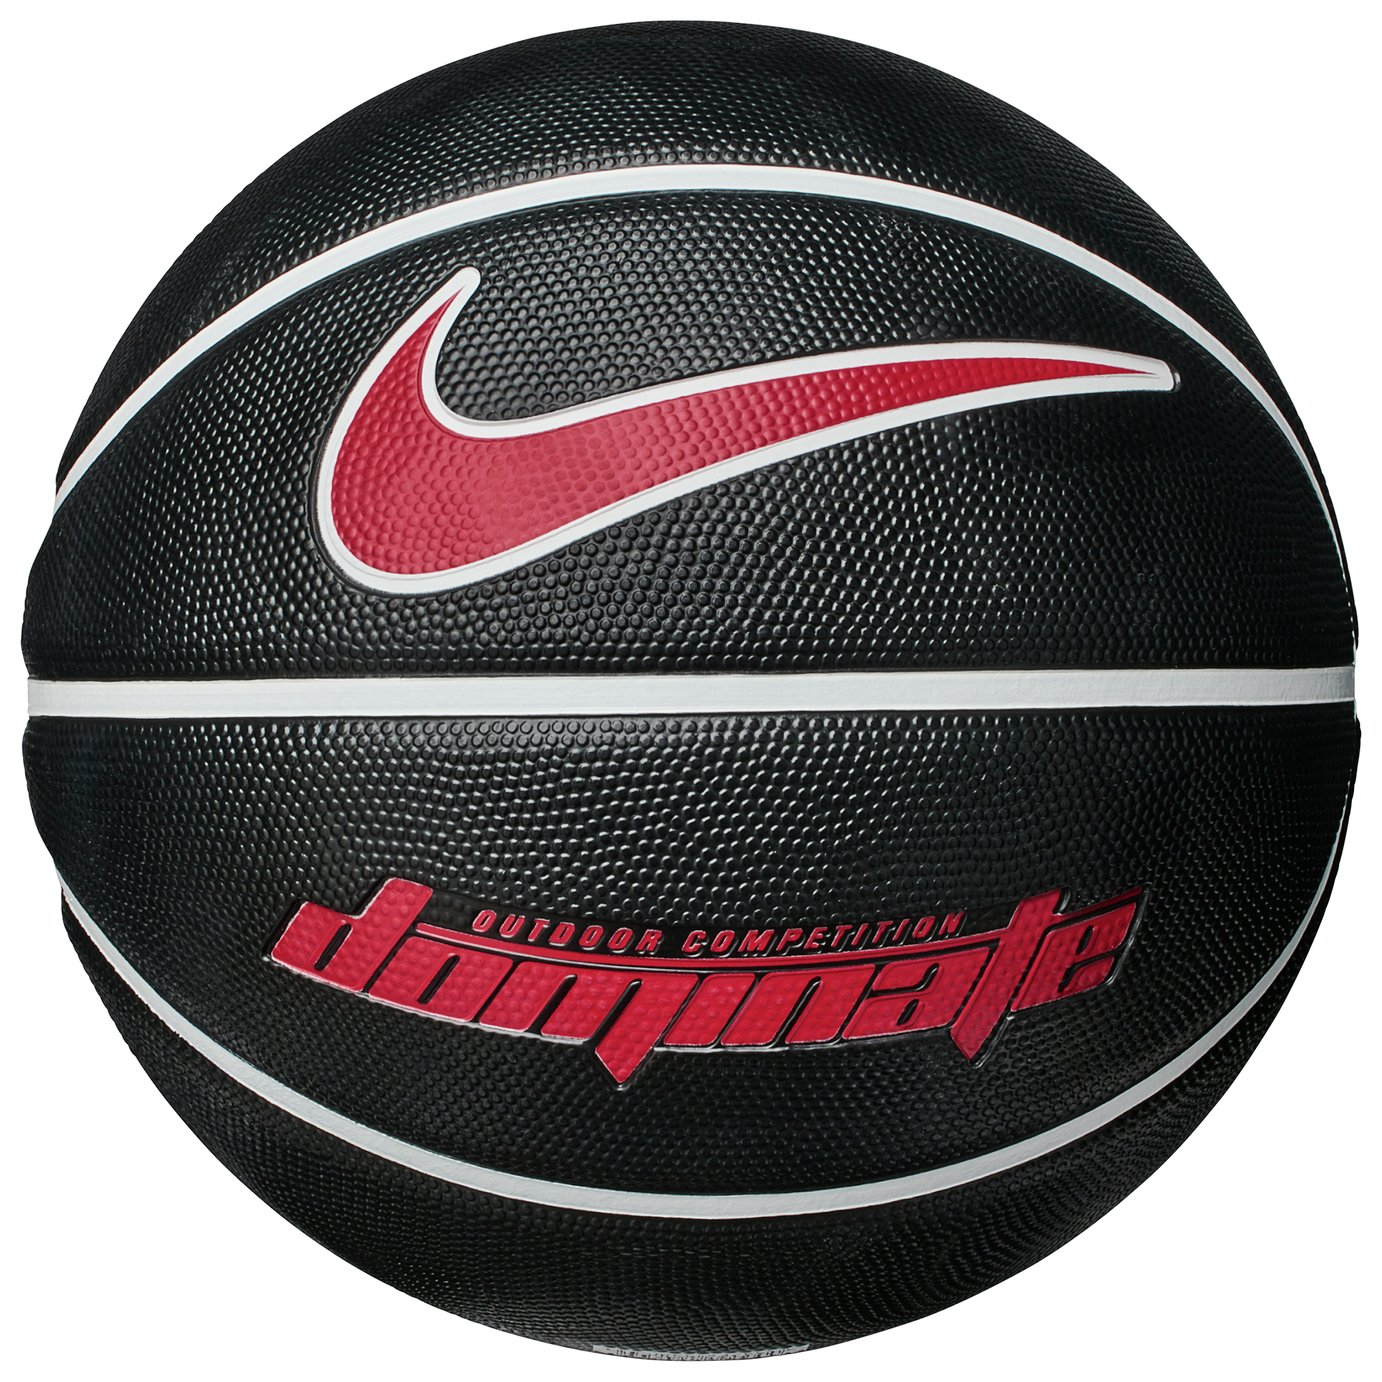 Nike Dominate Basketball - Black and White